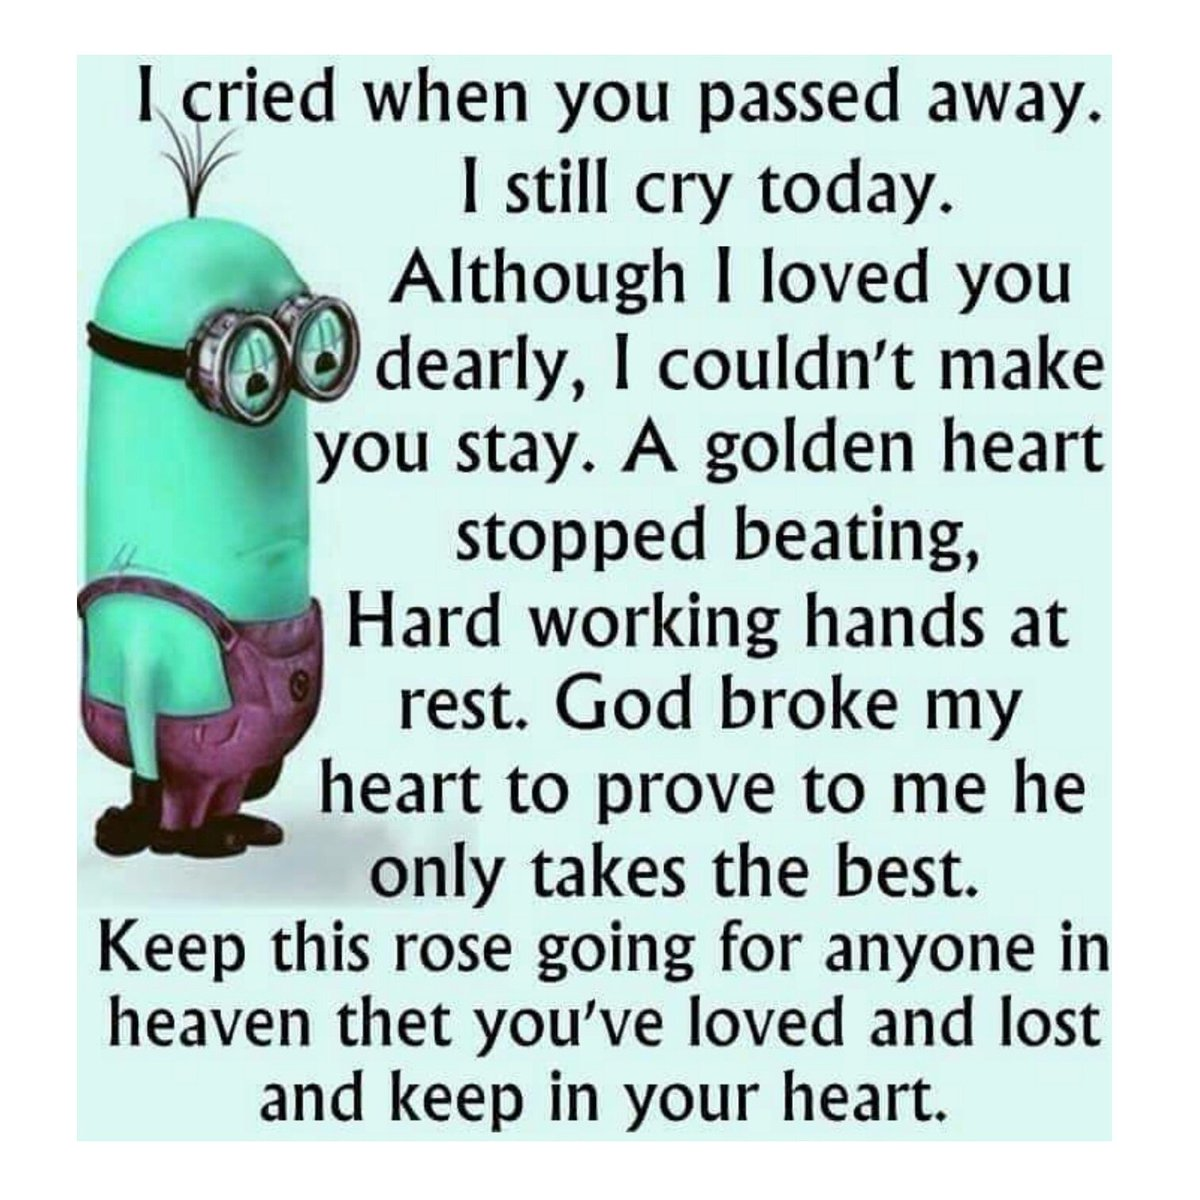 My Angel Sibling On Twitter The Phrase Gone Too Soon Comes To Mind When I Read This Quote Death Rip Griefsupport Siblinggrief Rp Repost Https T Co P2askijduf